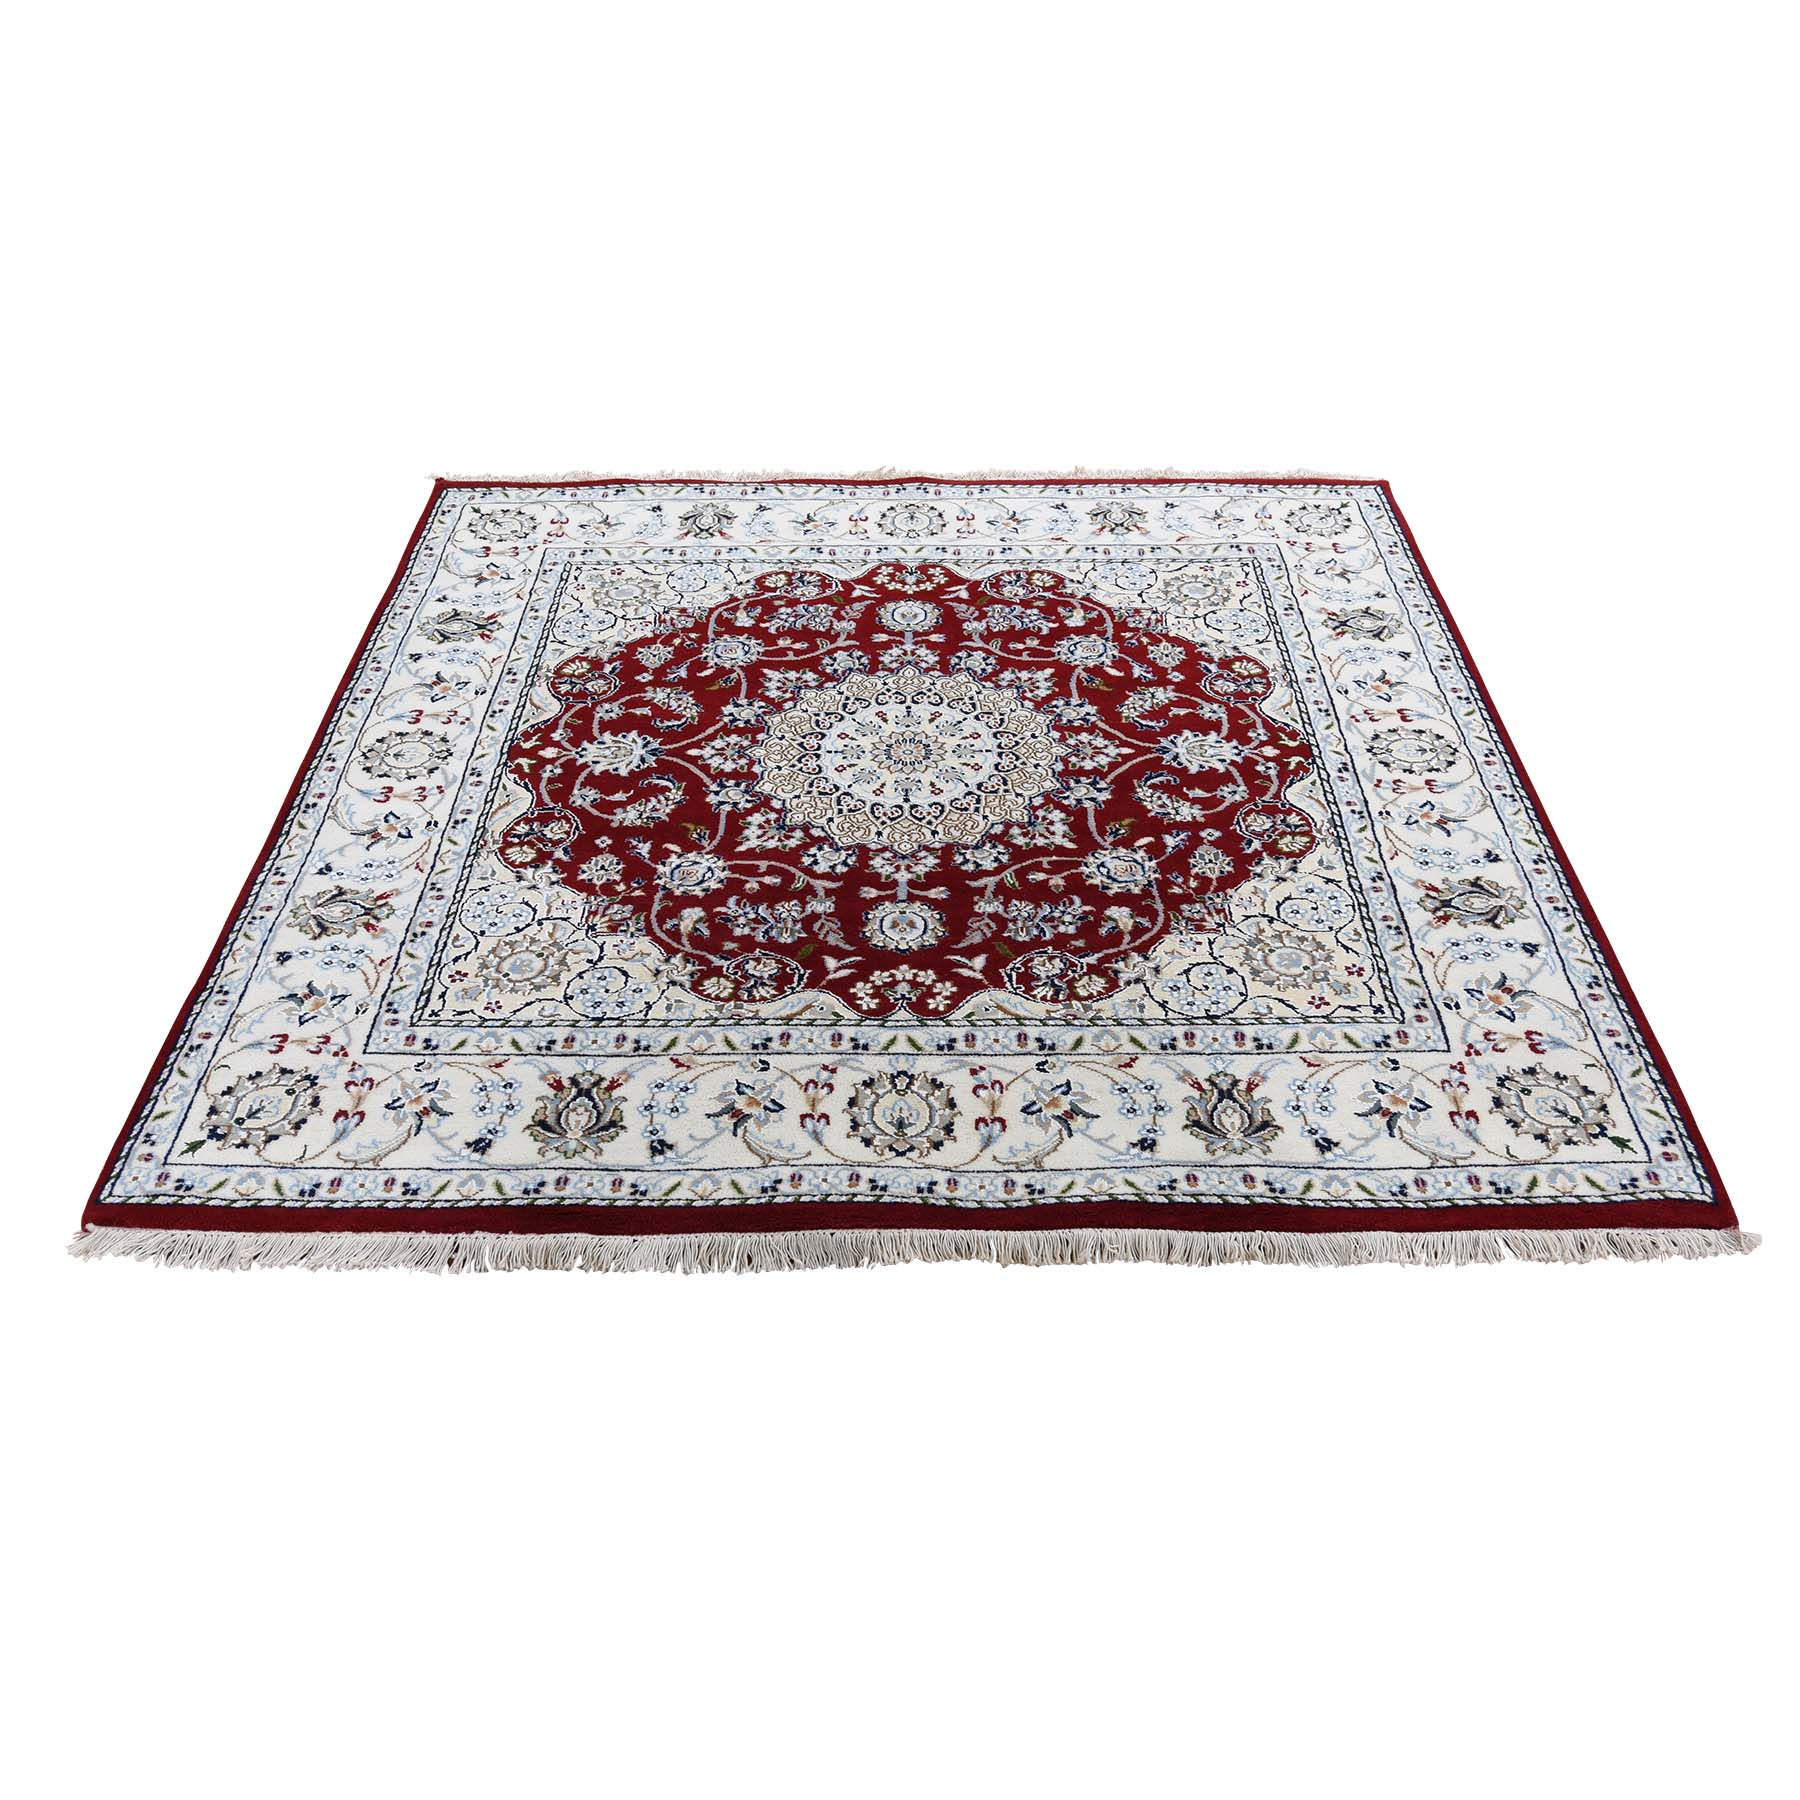 Pirniakan Collection Hand Knotted Red Rug No: 0192736